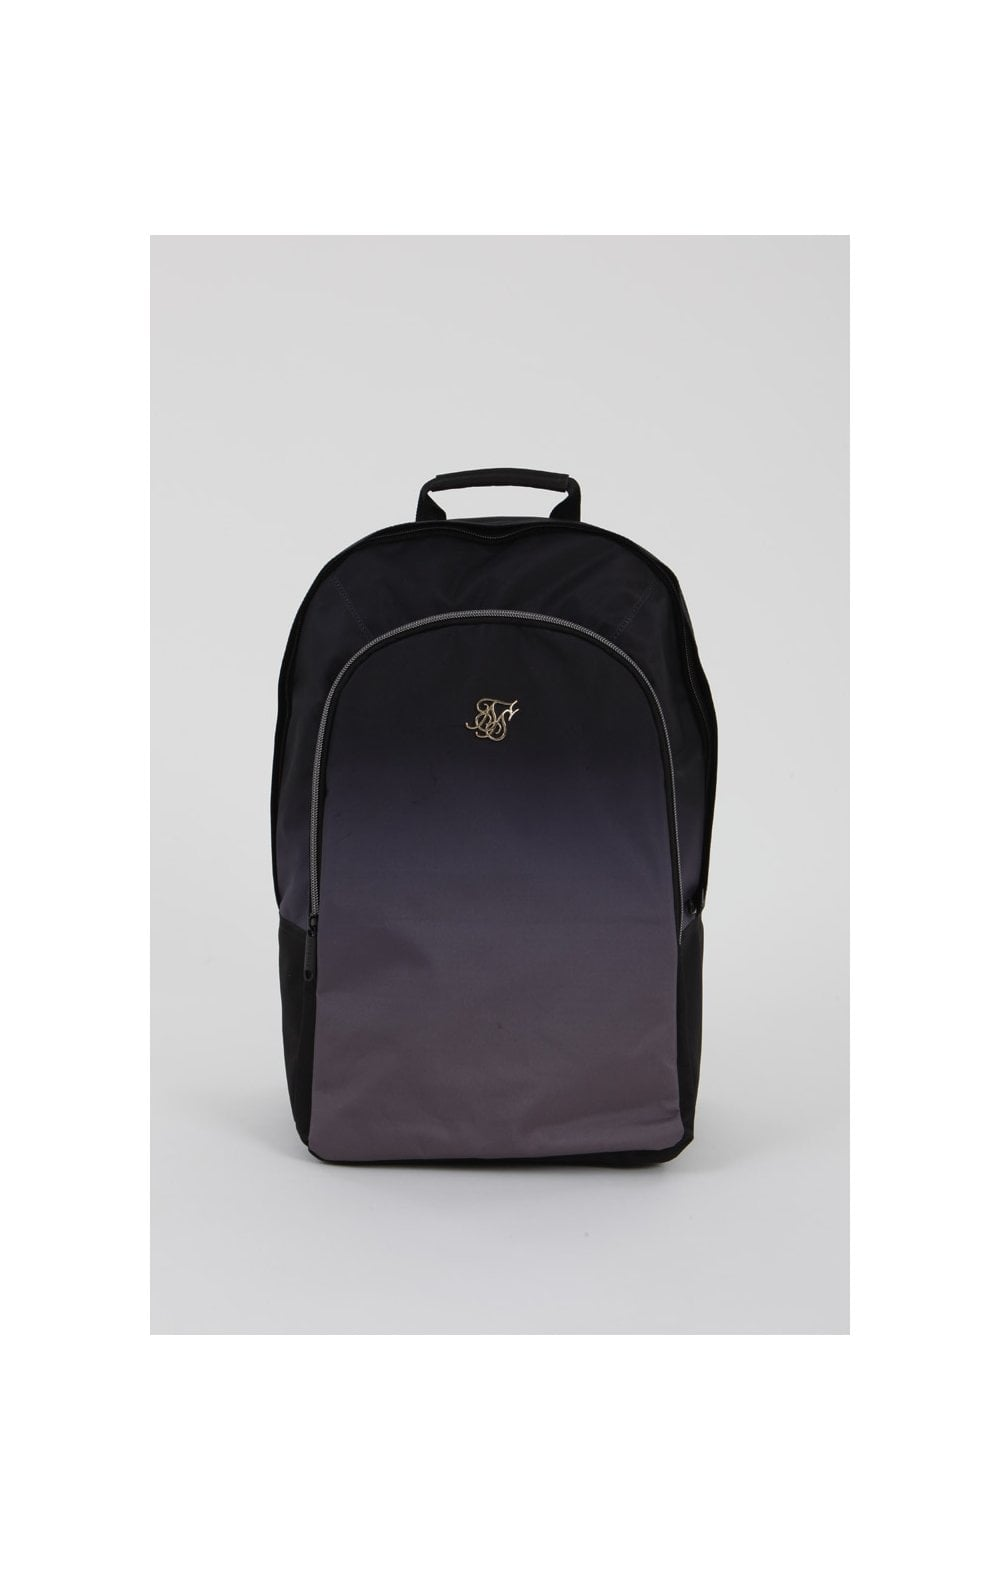 SikSilk Fade Bacpack - Black & Grey